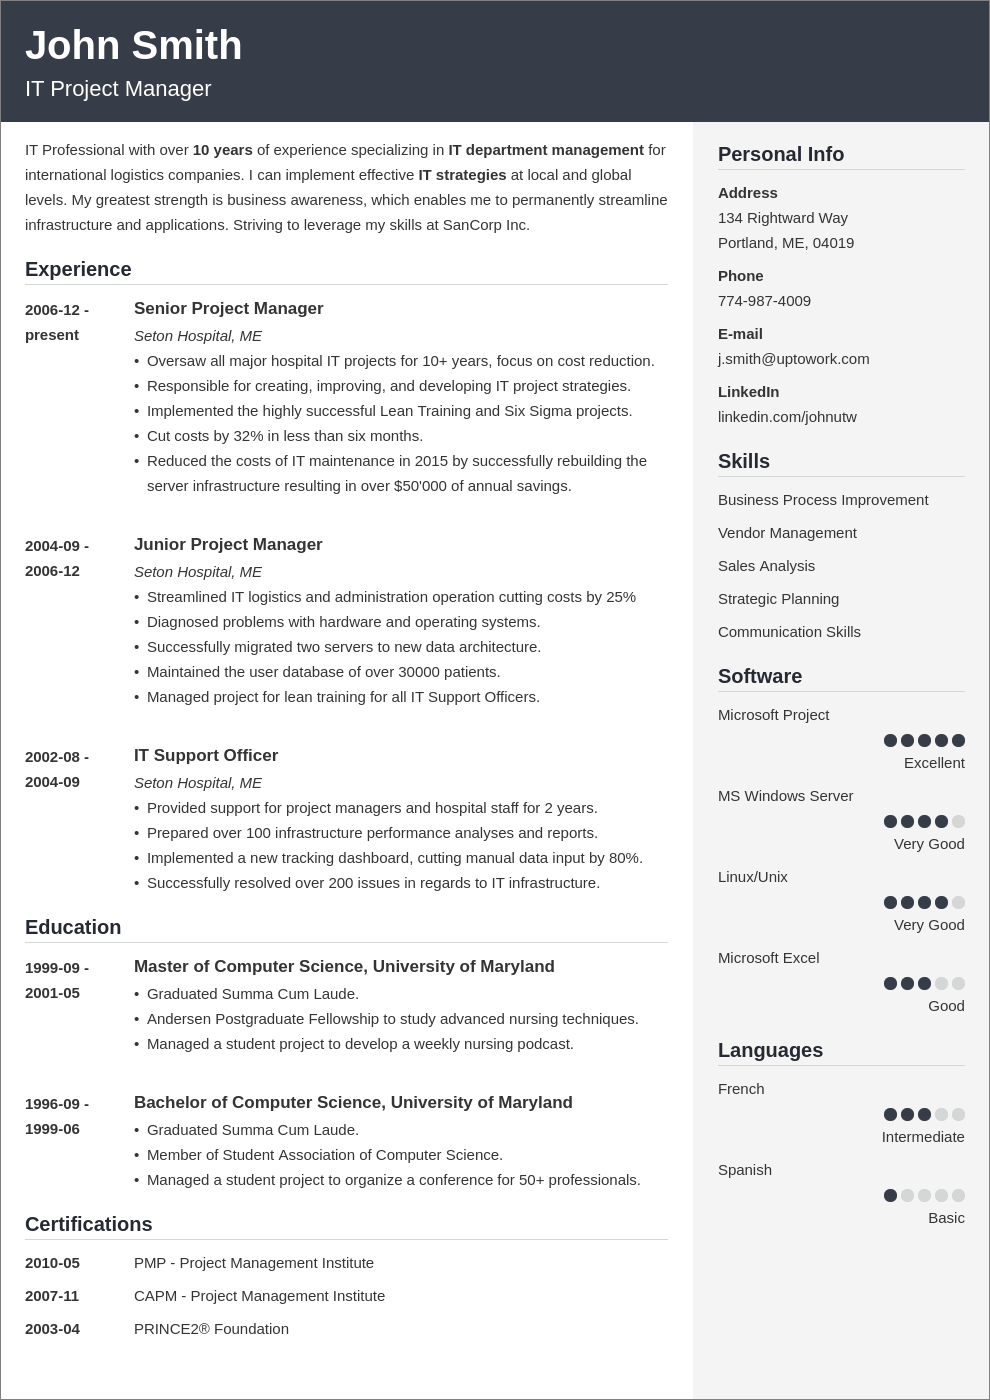 resume layout examples  best howto tips